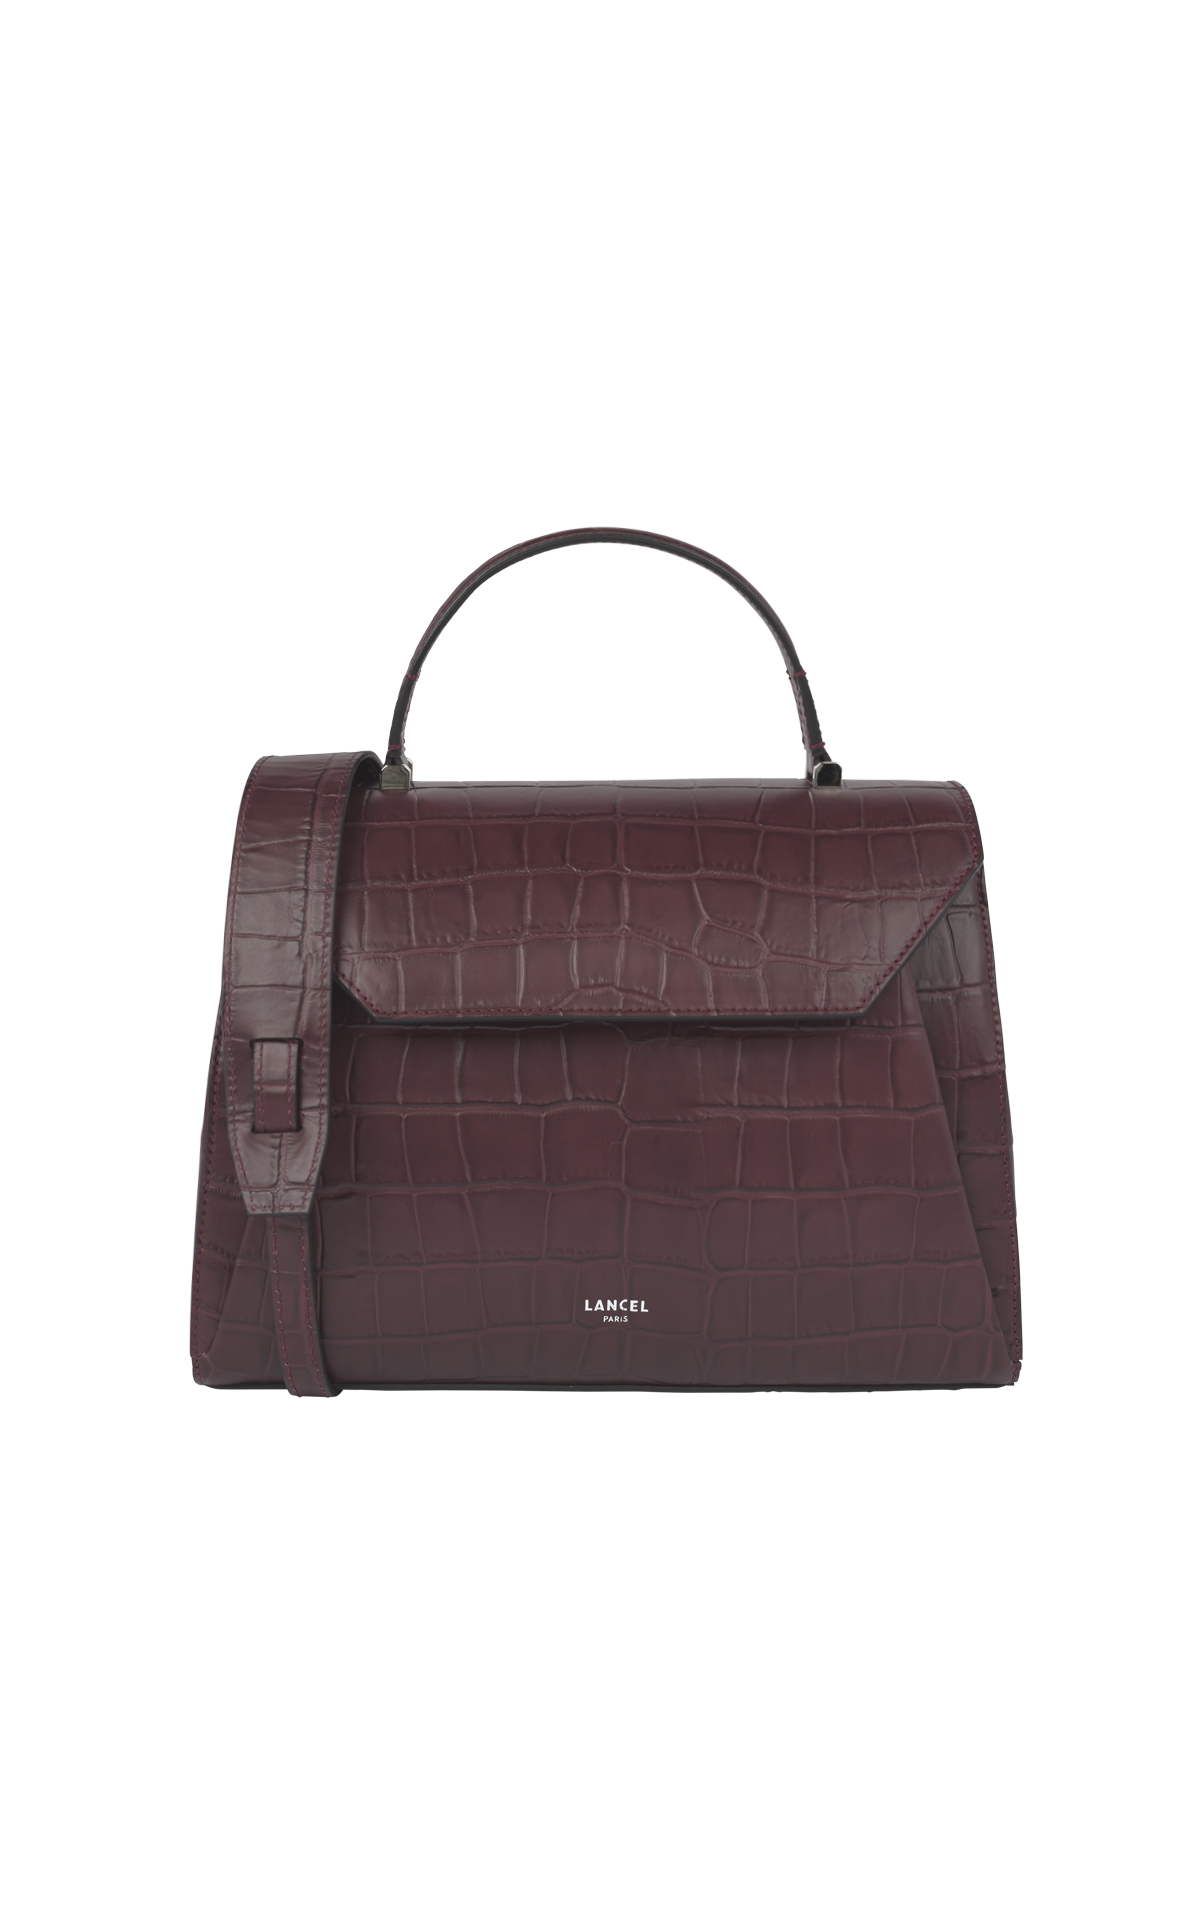 Bordeaux leather bag Lancel